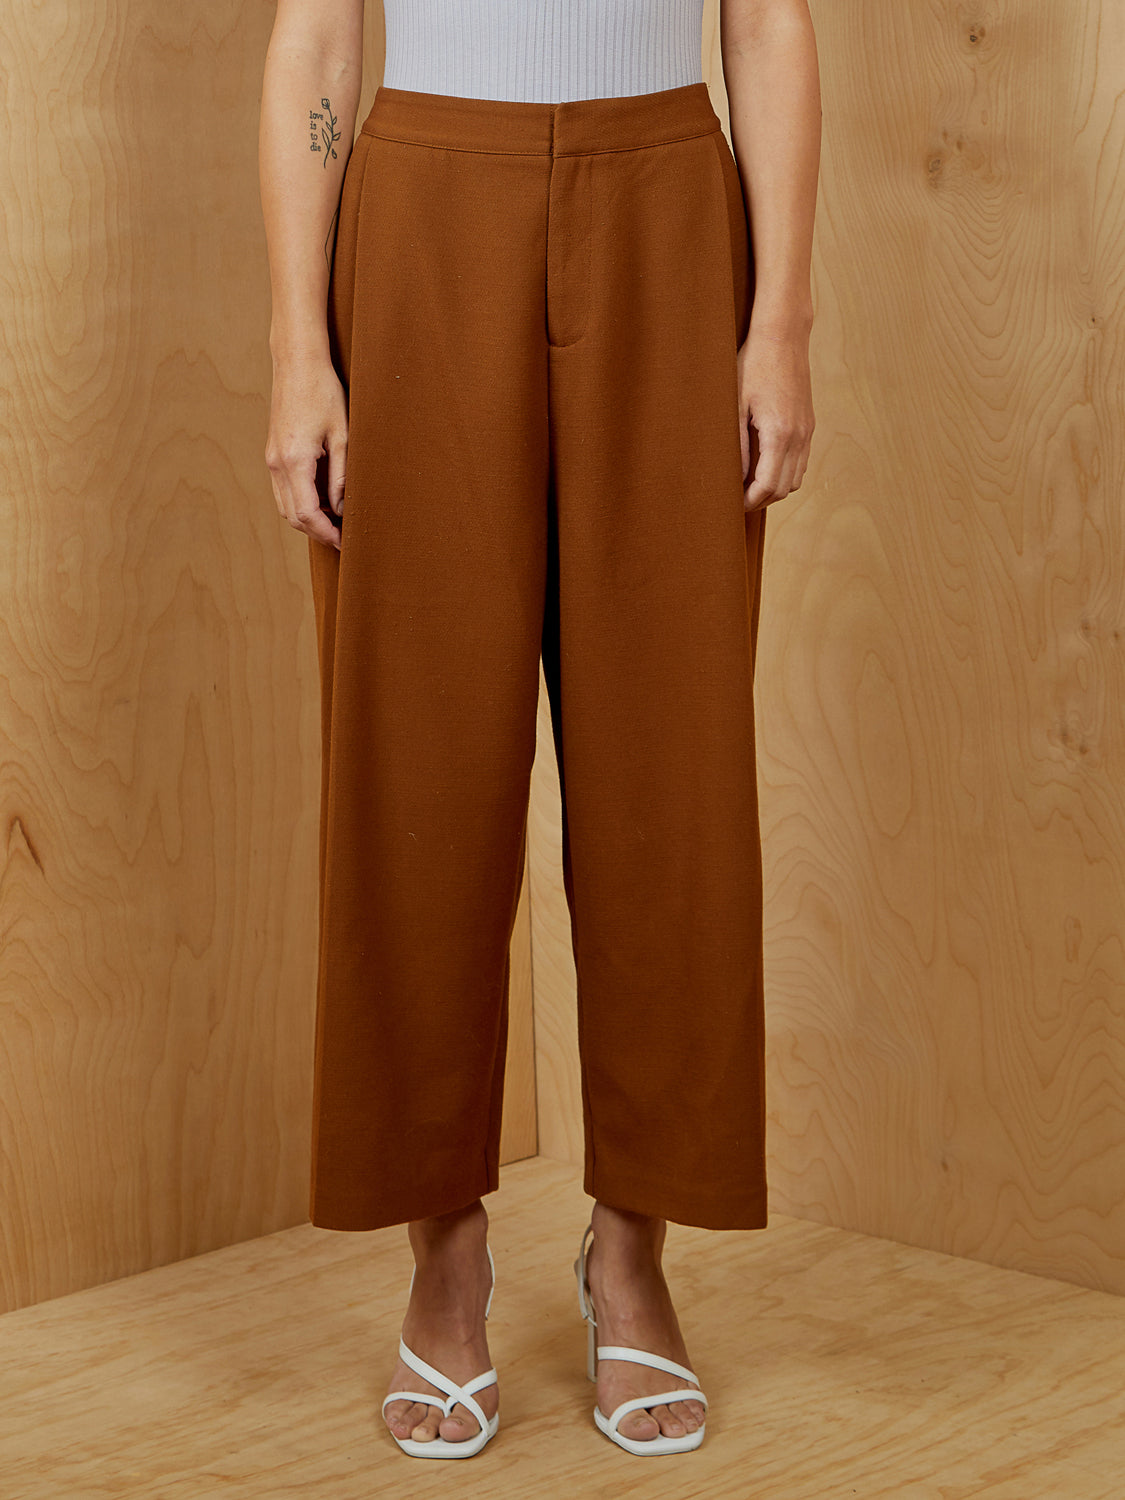 Oak + Fort Wool Brown Wide Legged Crop Pants